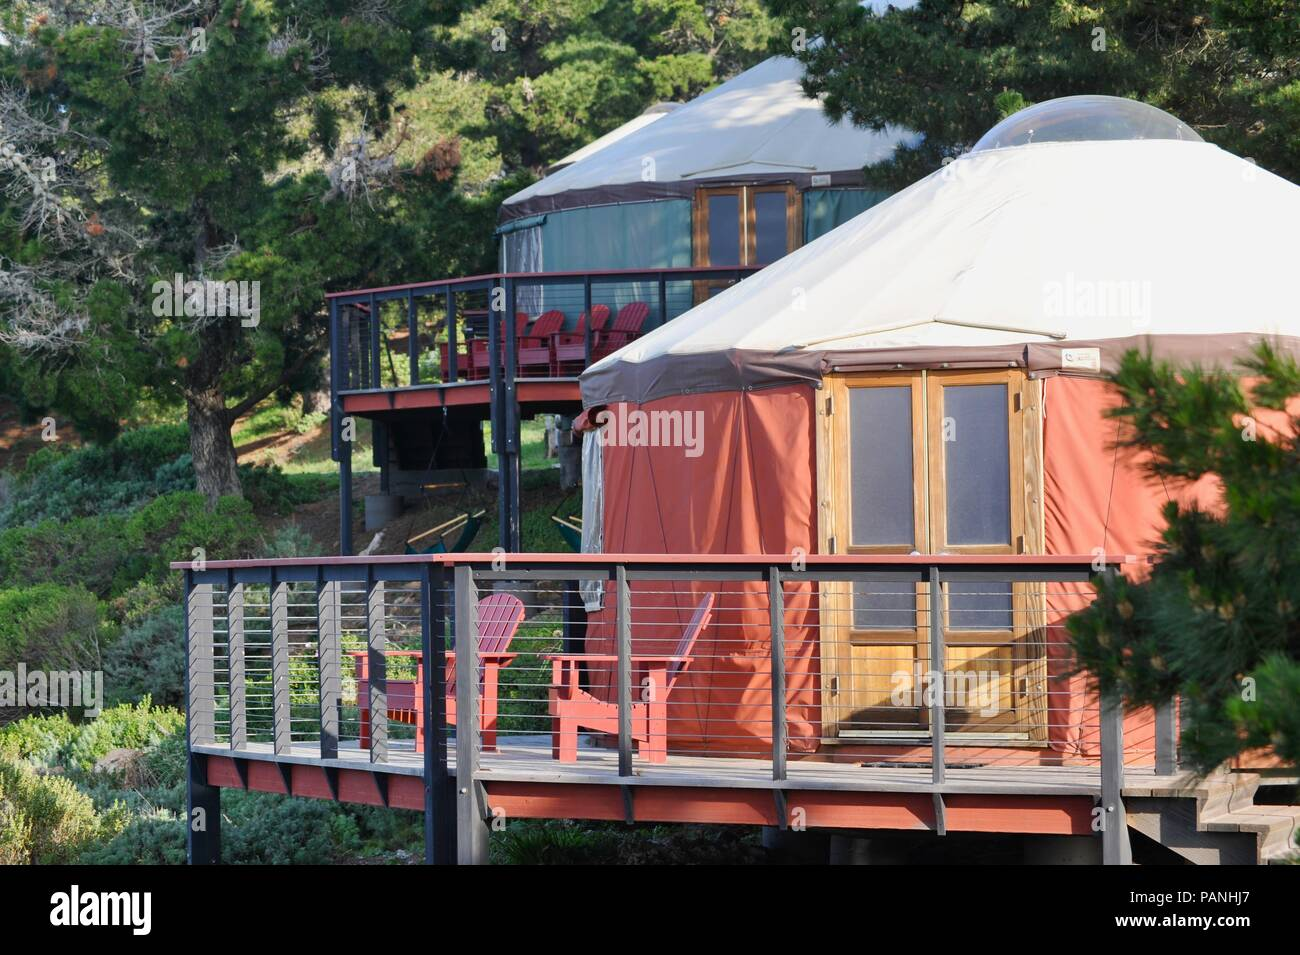 Fabric and wood framed yurt structures for, luxurious